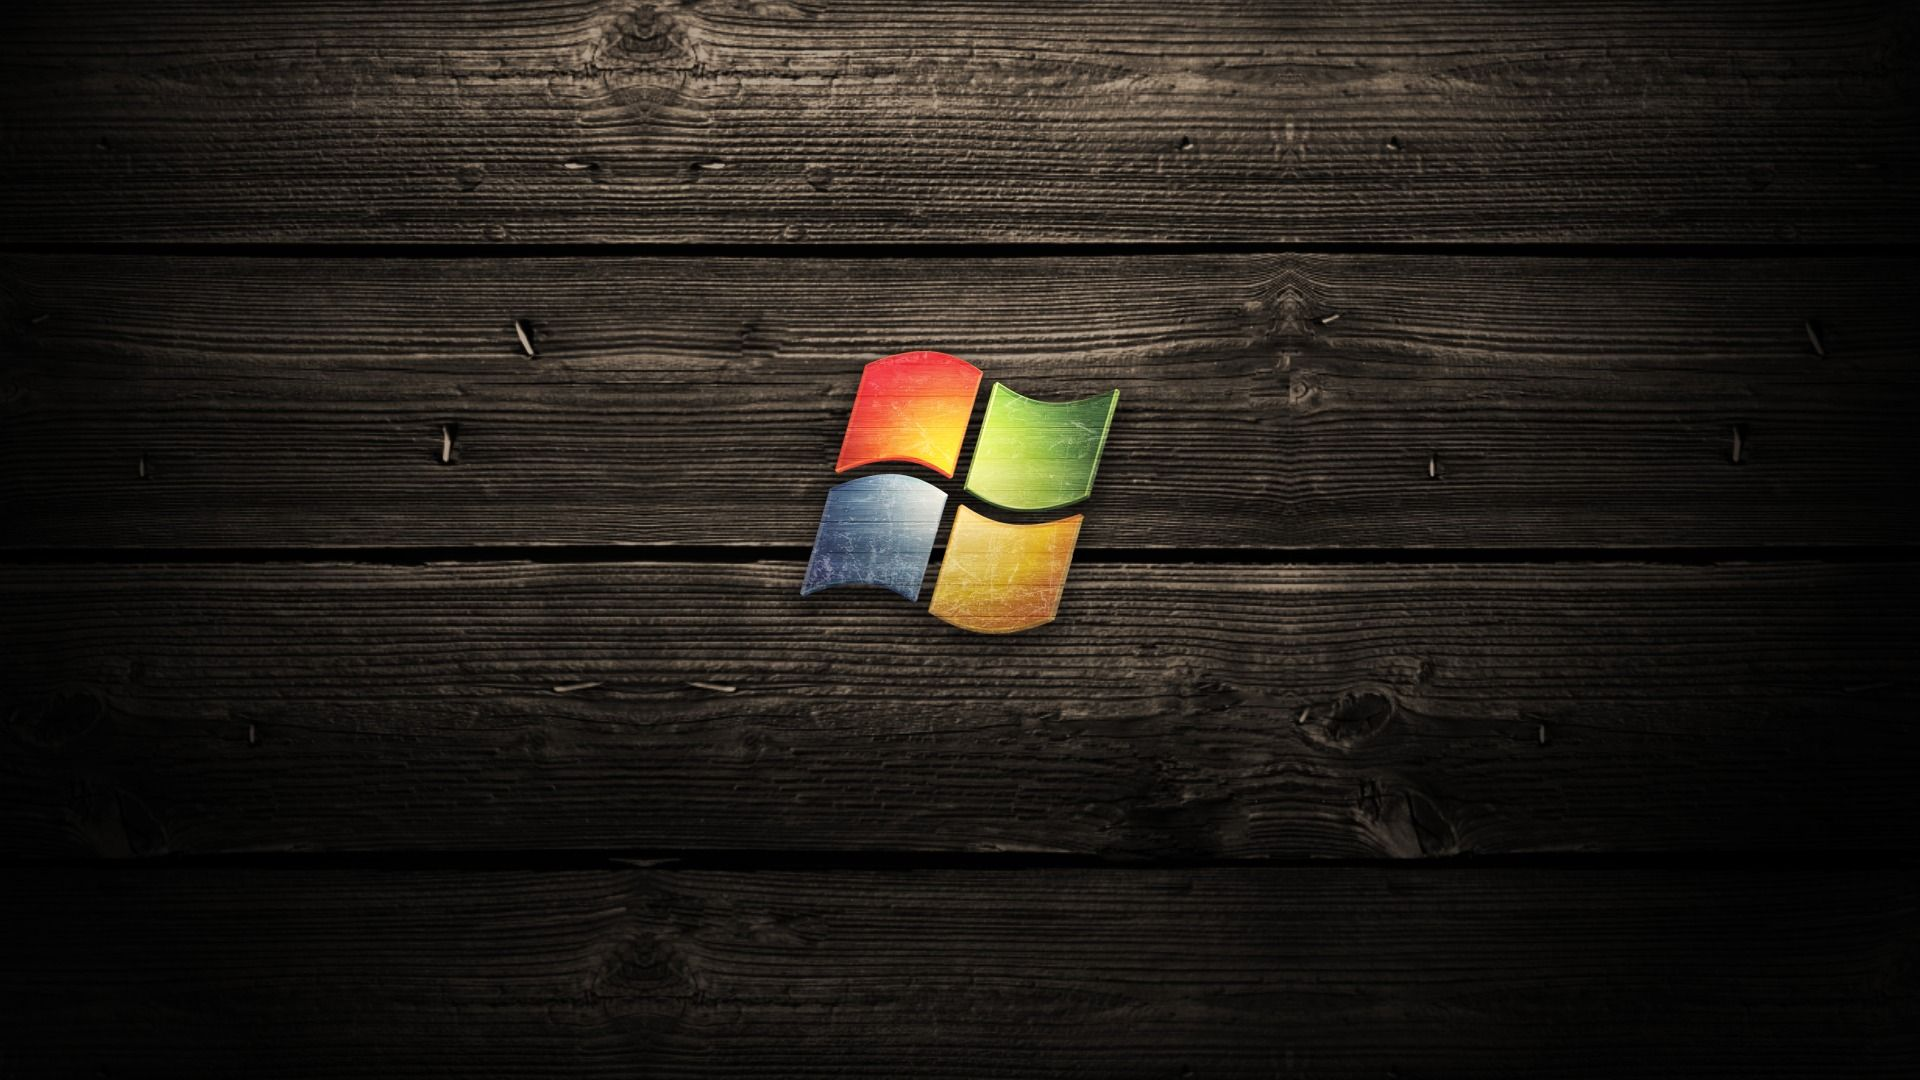 Windows Wallpaper 1920x1080